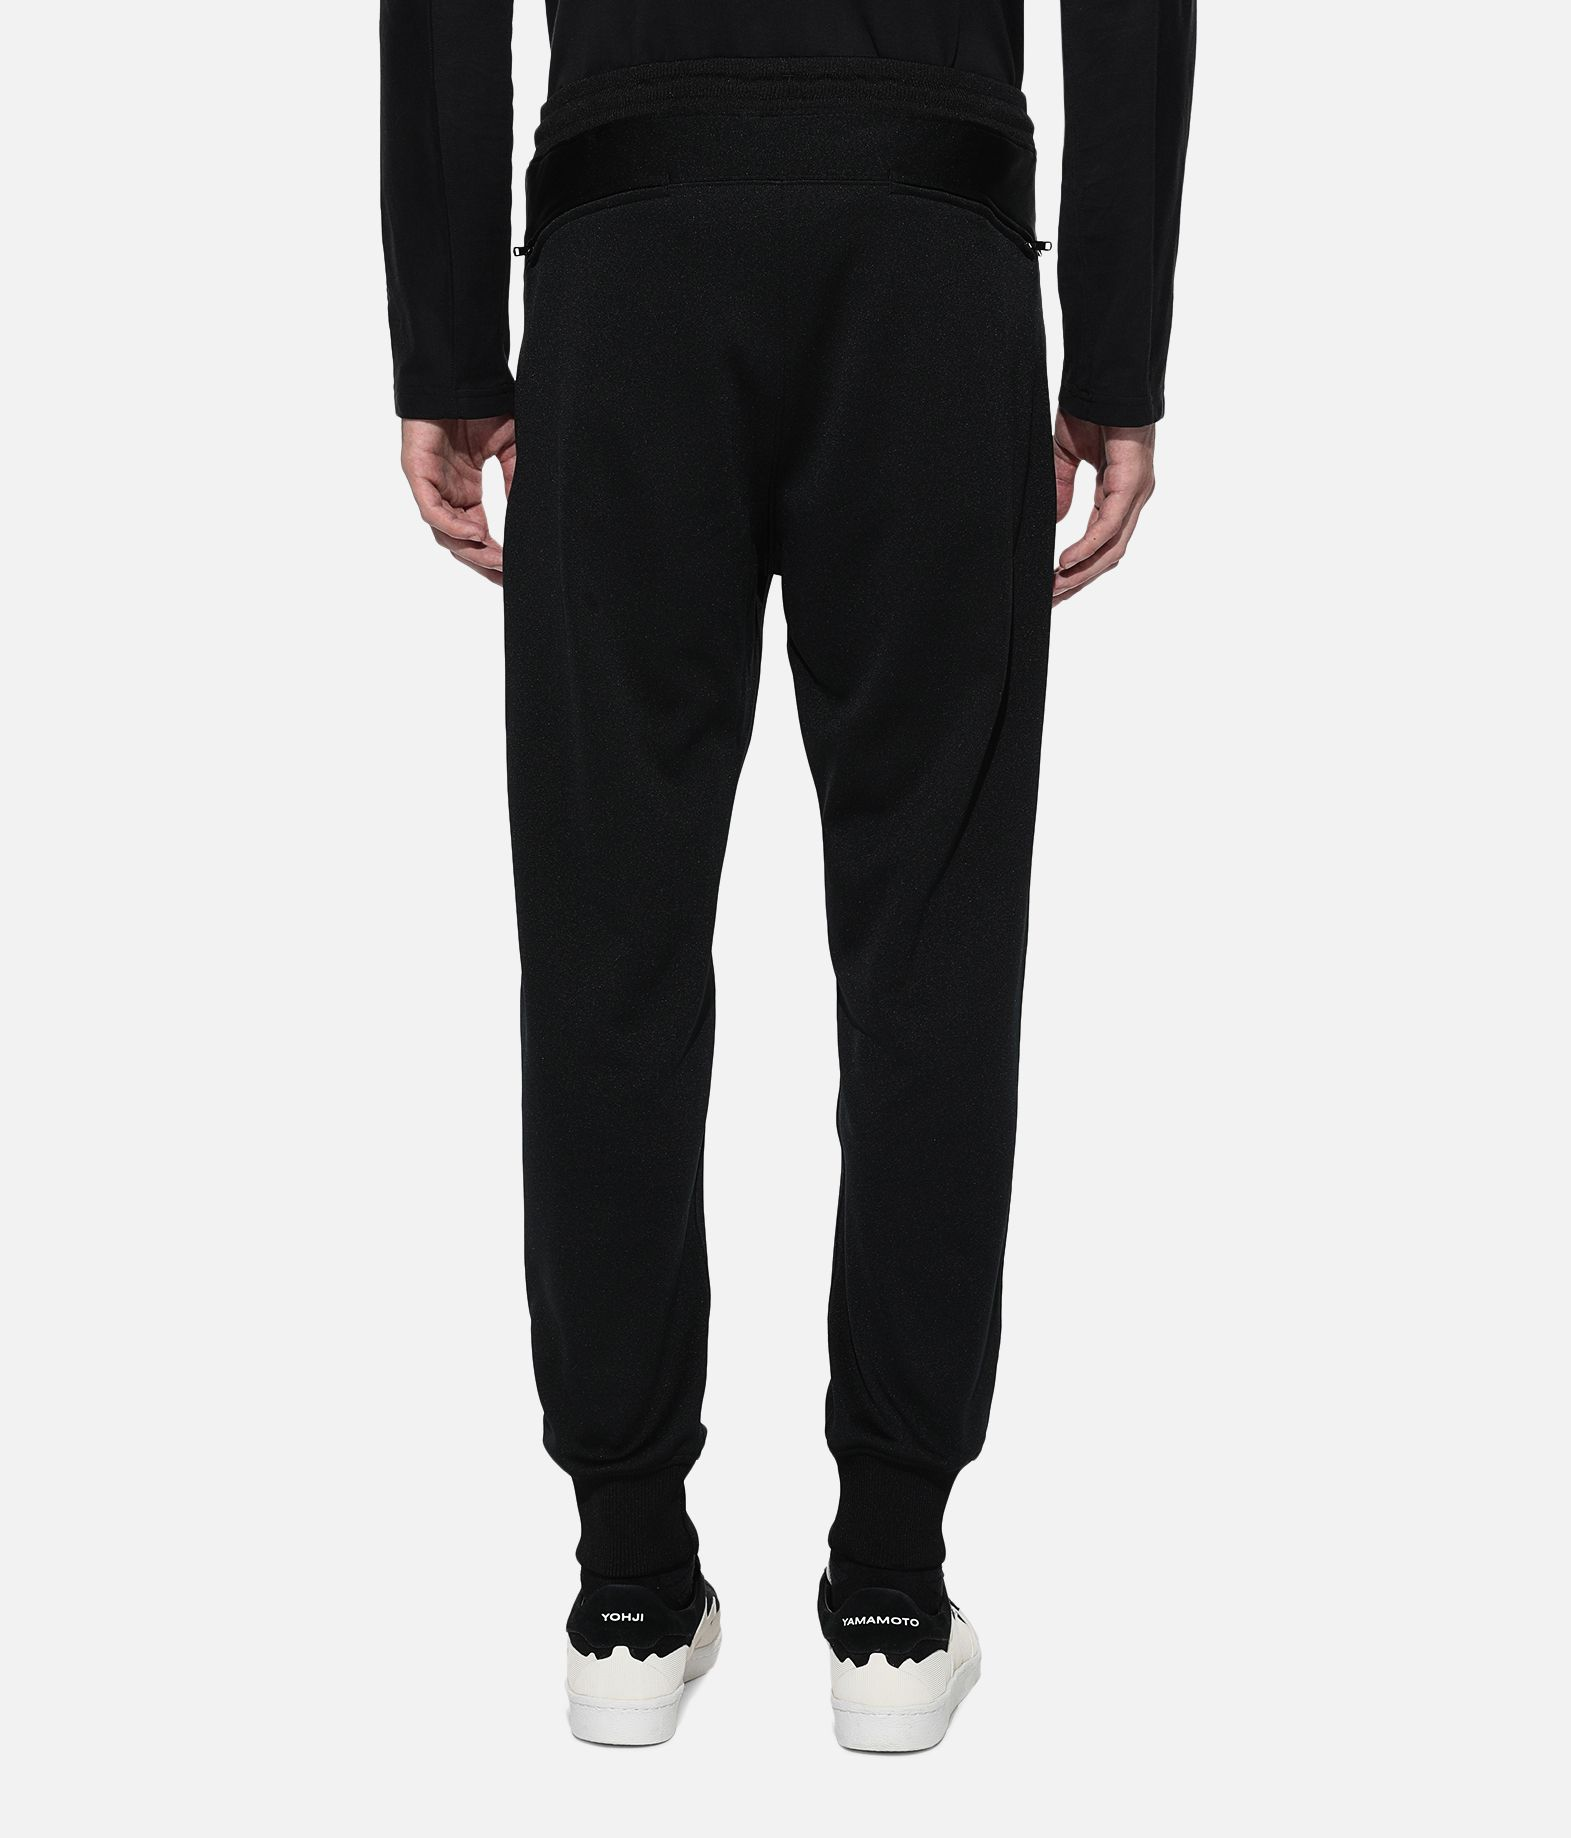 Y-3 Y-3 New Classic Track Pants Track pant Man d